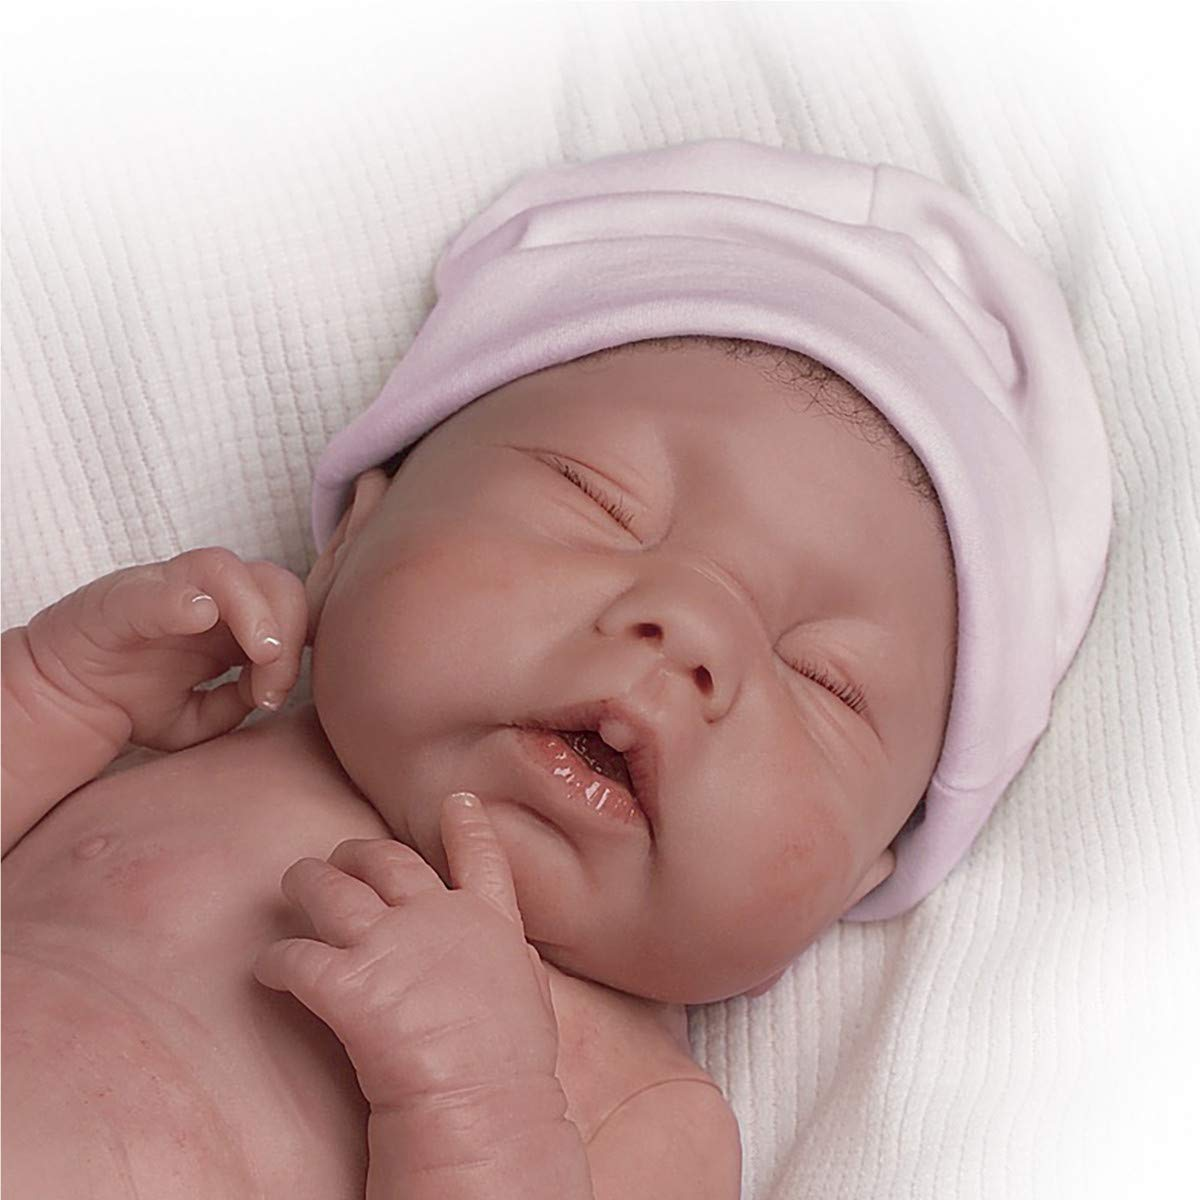 db72acb04 Amazon.com: May God Bless You, Little Grace Anatomically Correct So Truly  Real® Lifelike, Realistic Newborn Baby Doll 15.5-inches by The Ashton-Drake  ...